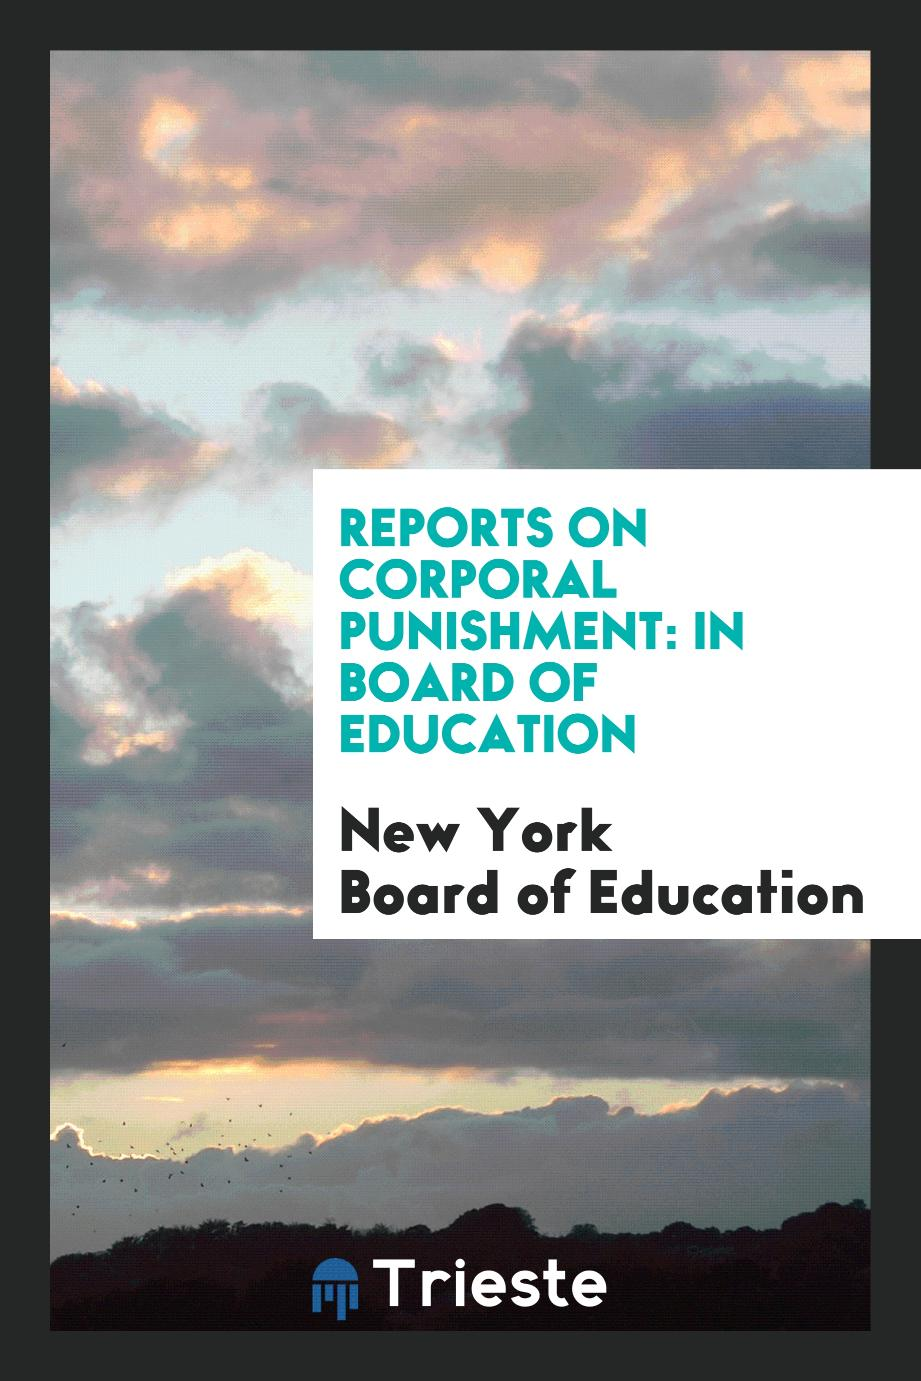 Reports on Corporal Punishment: In Board of Education